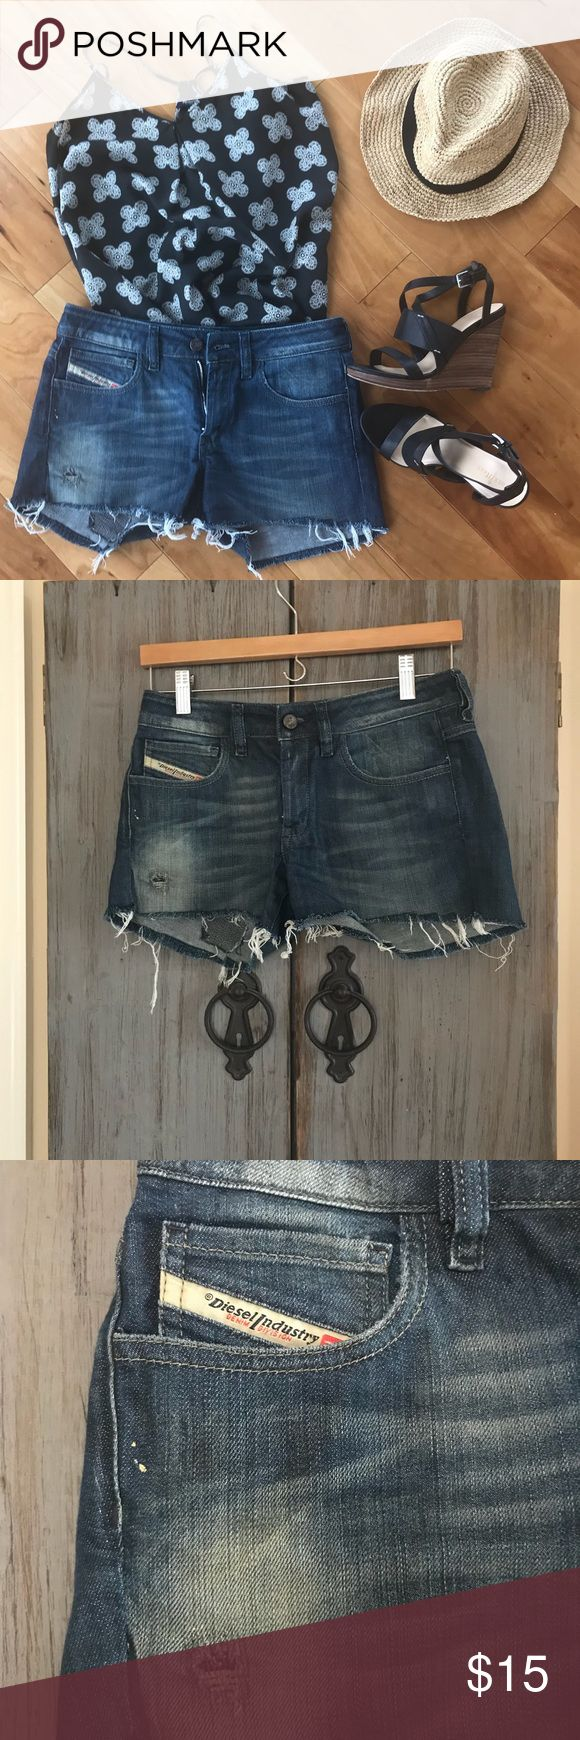 Diesel Jeans cut off shorts Diesel cut off shorts. These run small, more like a 24/25. Cotton and elastane. Dark wash. Great condition. Diesel Shorts Jean Shorts